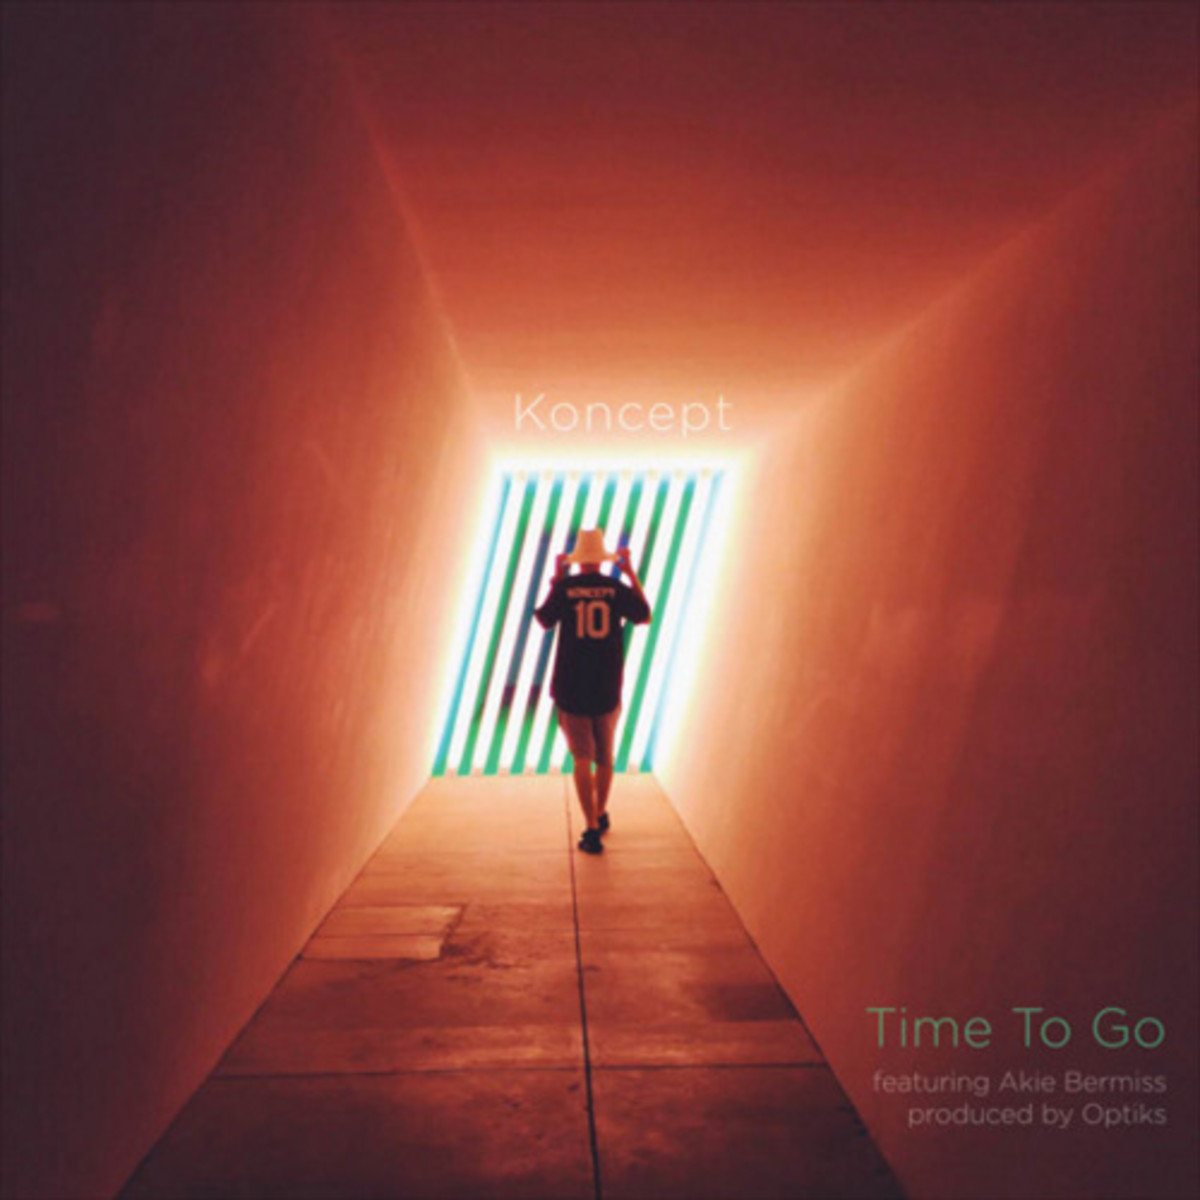 koncept-time-to-go.jpg